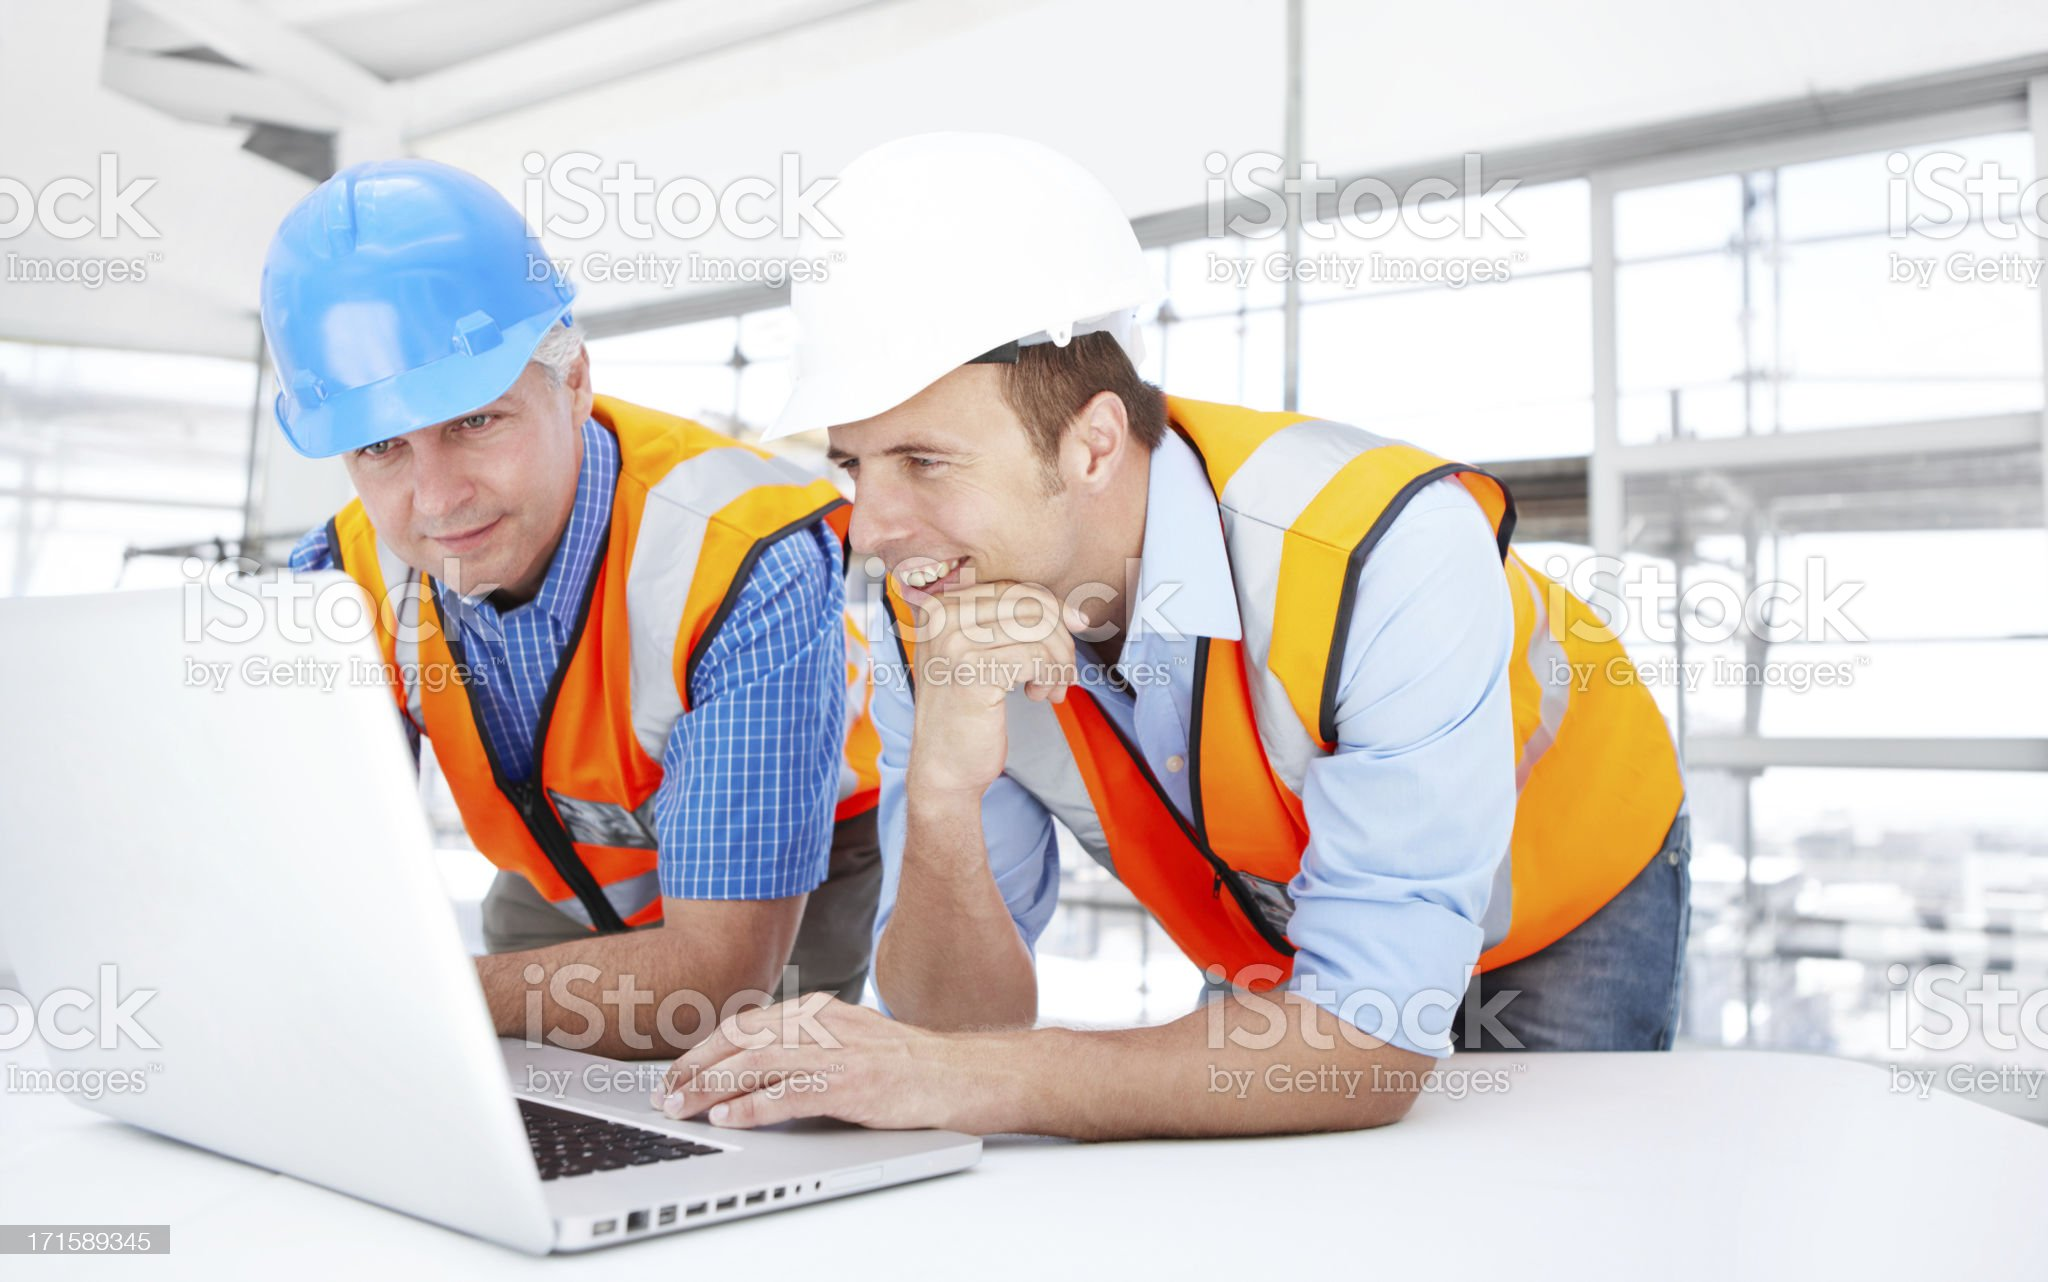 Pleased with their progress royalty-free stock photo